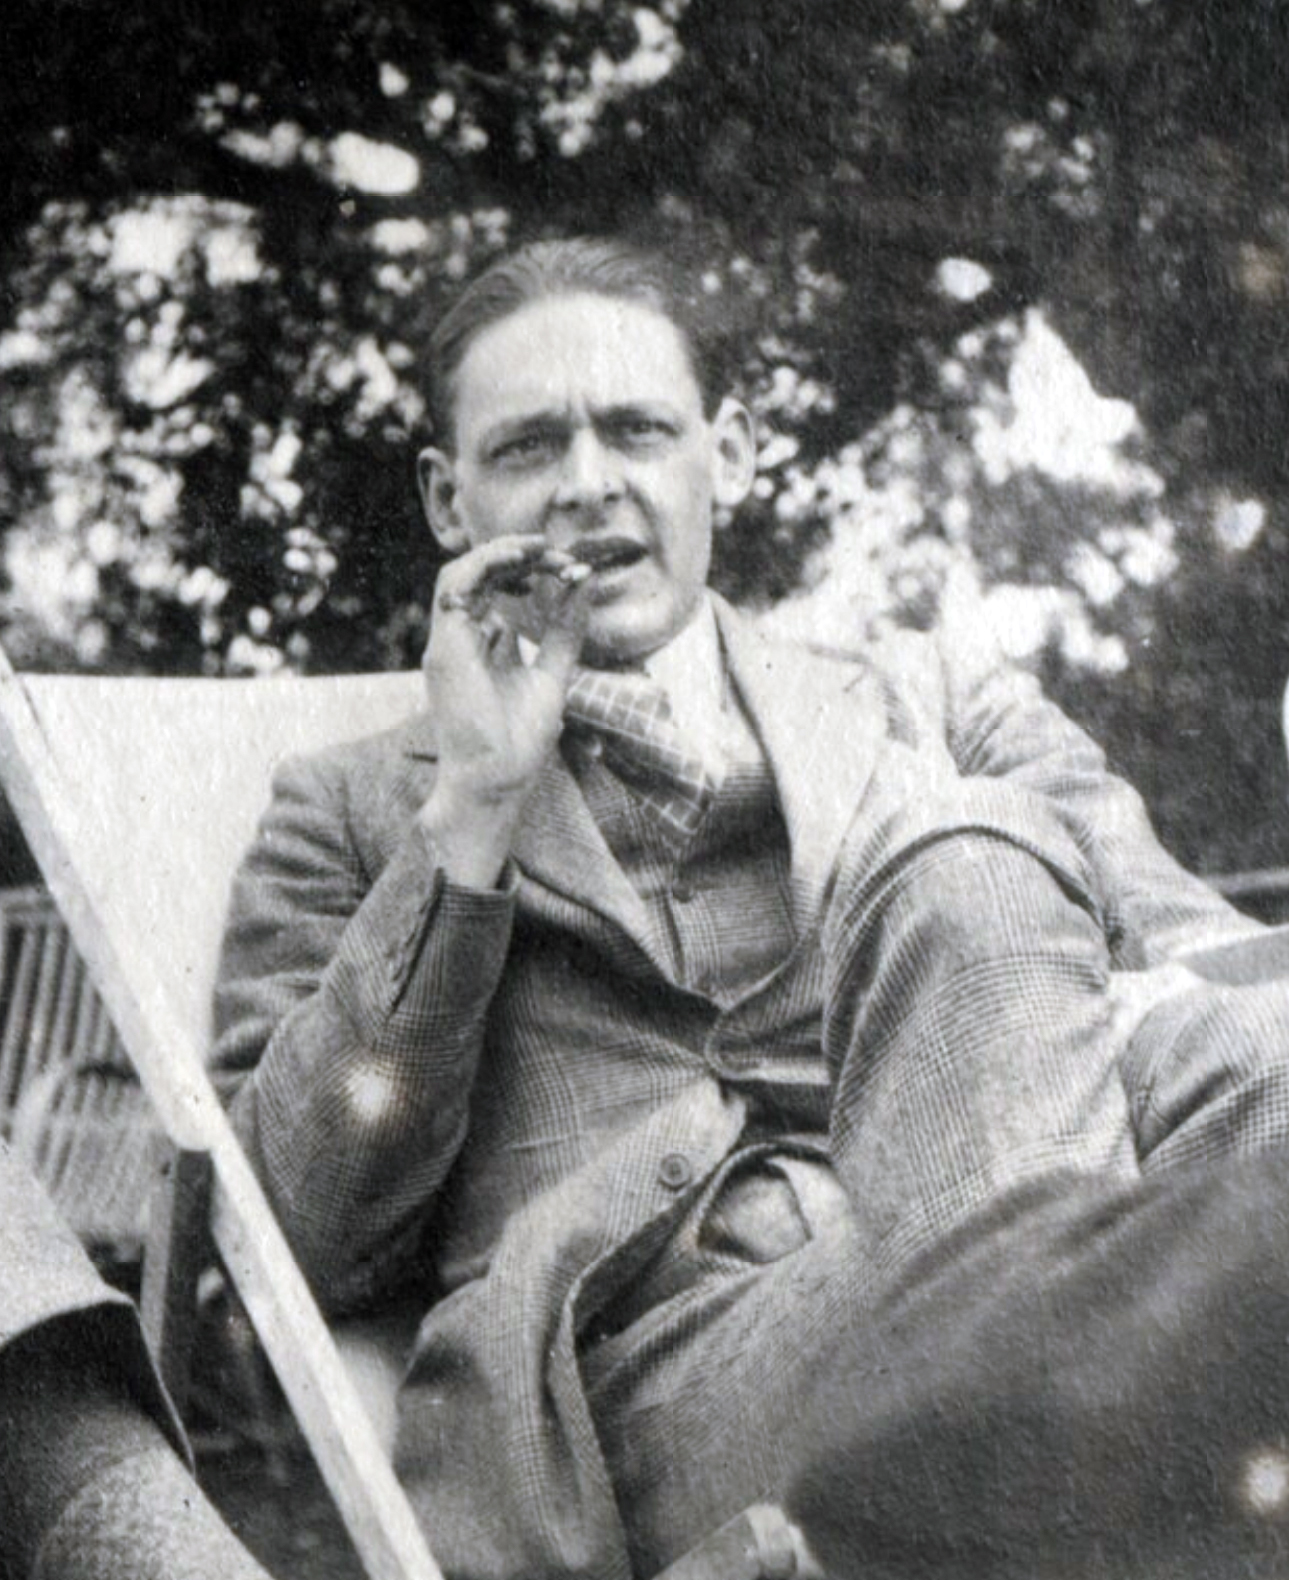 about Thomas Stearns Eliot